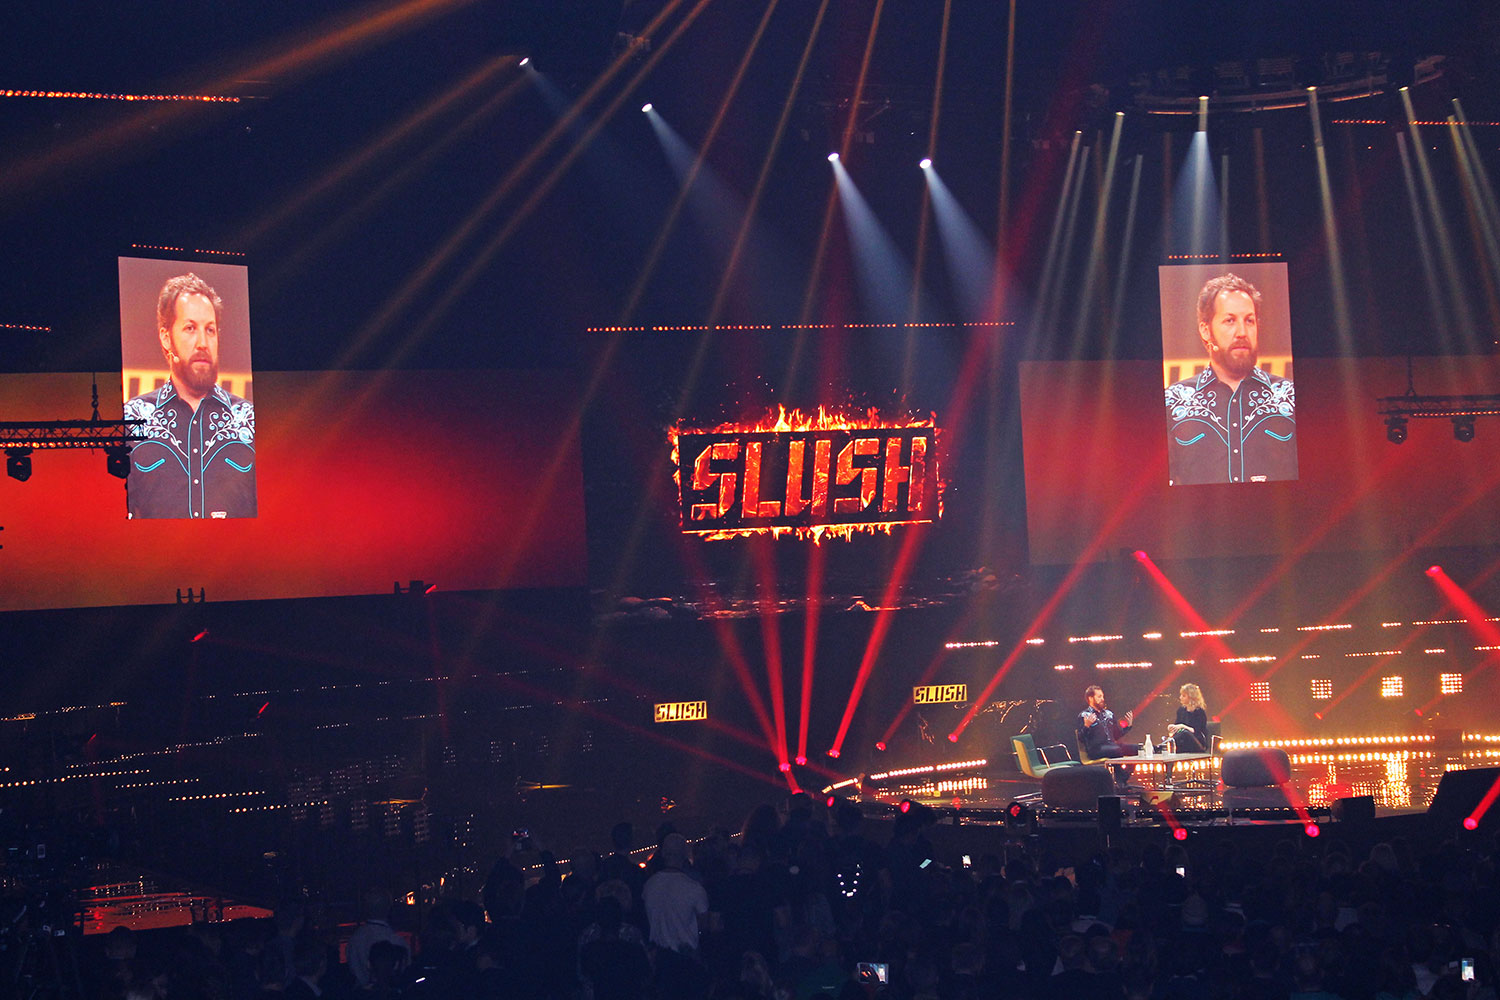 Venture investor Chris Sacca at Slush 2016